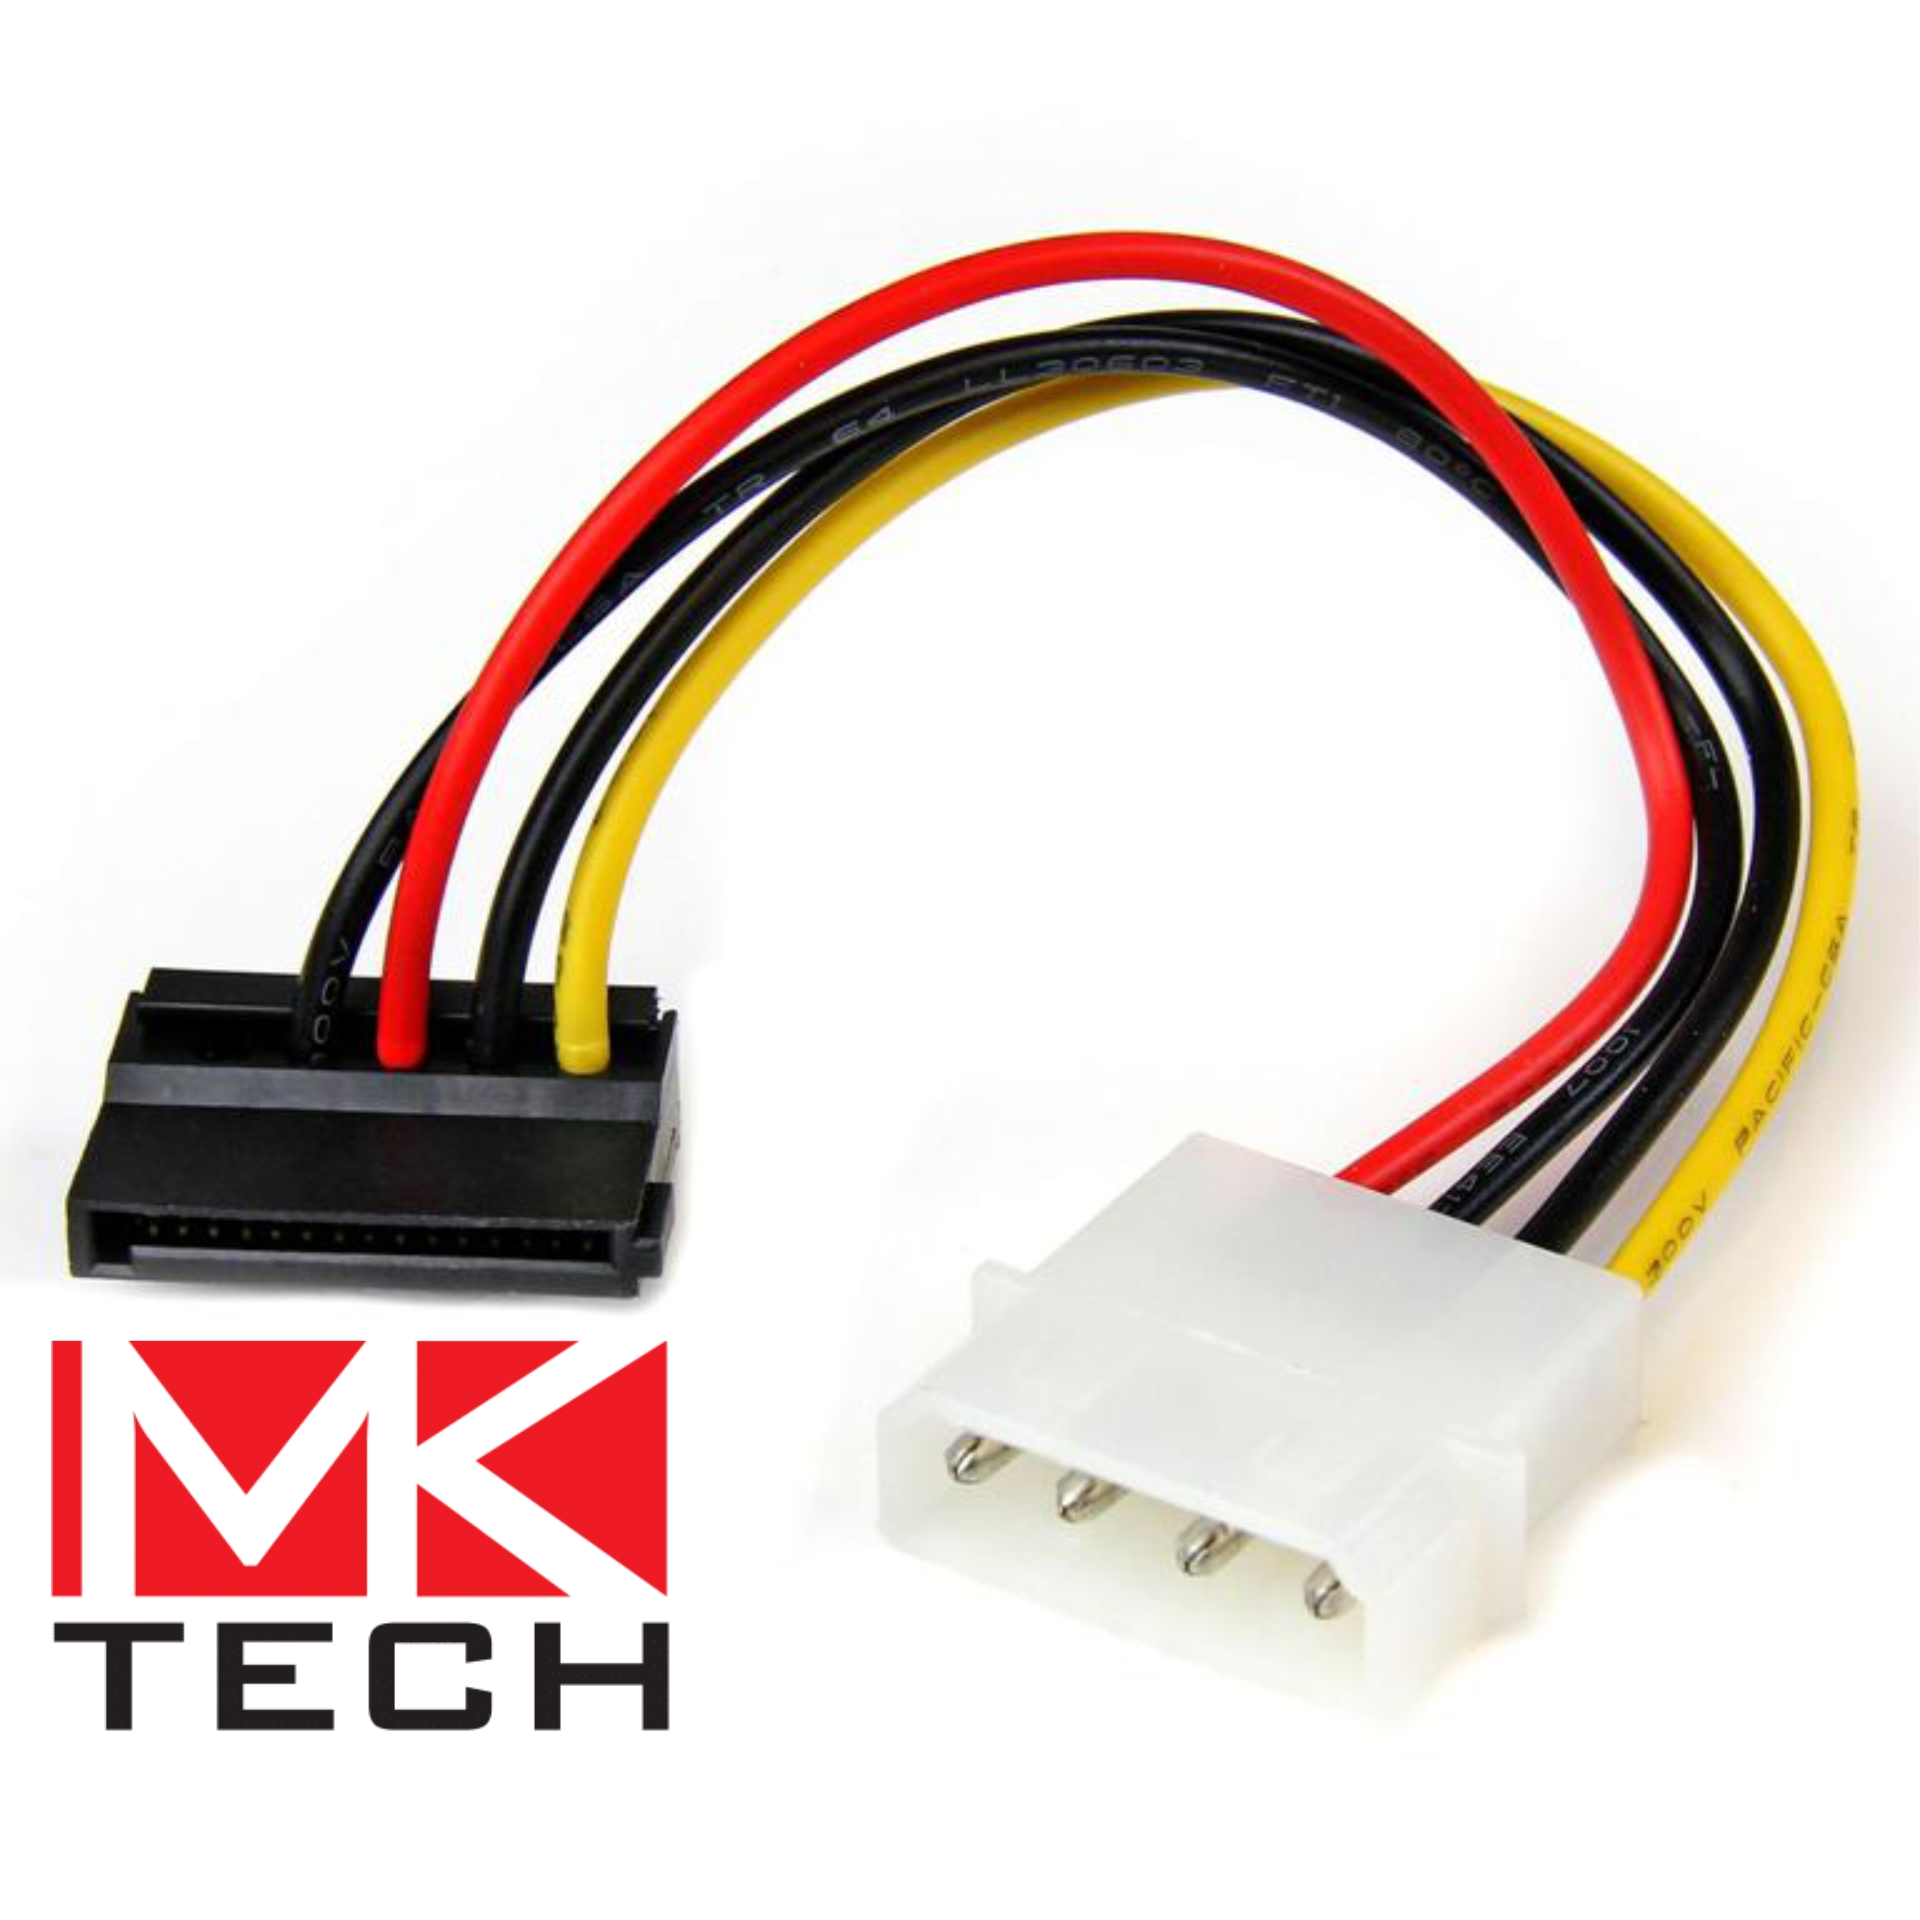 Molex to SATA Power Converter Cable MKTECH